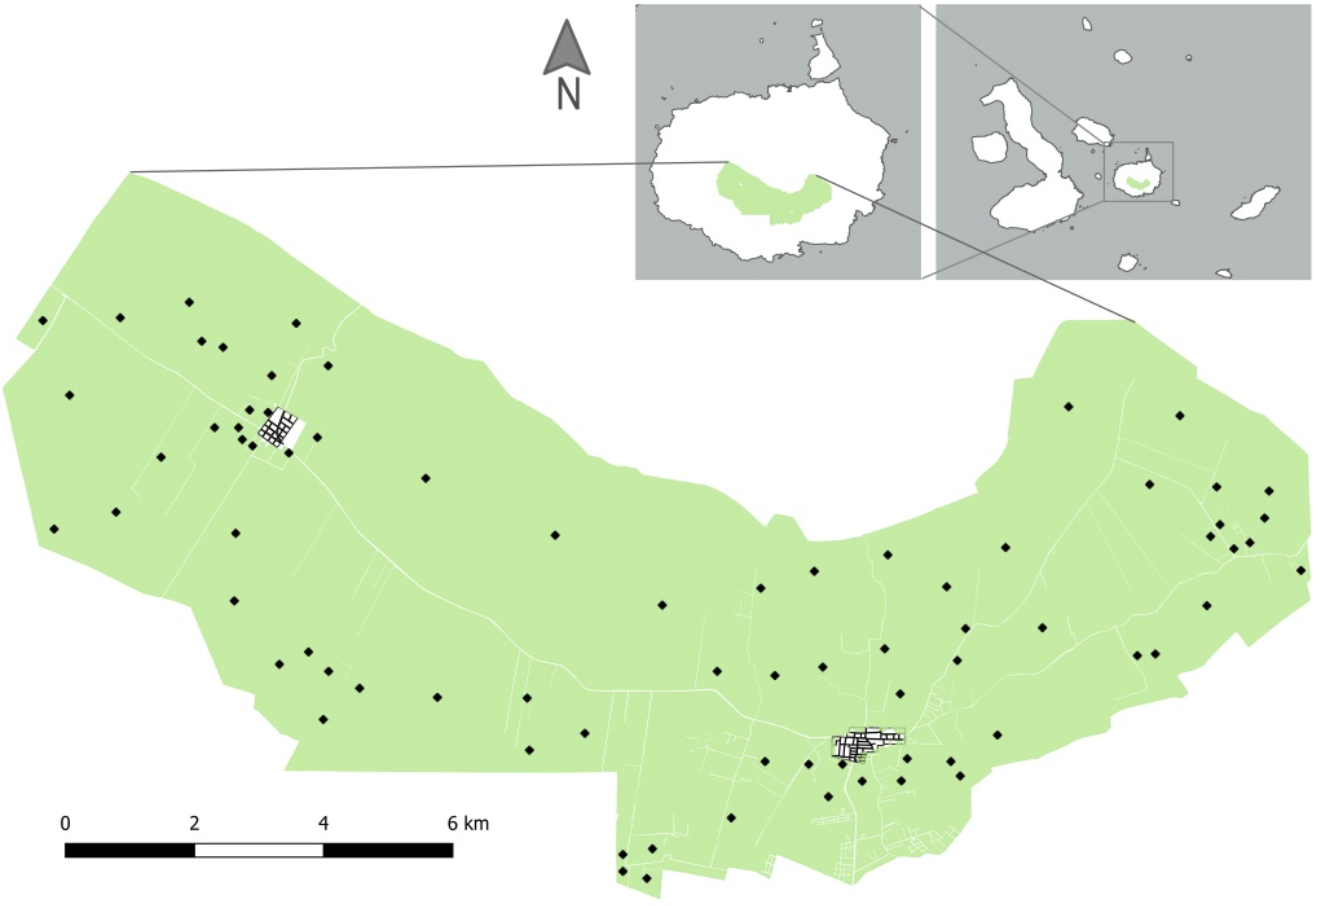 Figure 2.  Location of the agricultural zone on Santa Cruz Island and of Santa Cruz Island within the Galapagos Archipelago. The 73 interview locations are indicated by black diamonds. Map: Carolina Carrión and Claudio Crespo.  Click to enlarge.